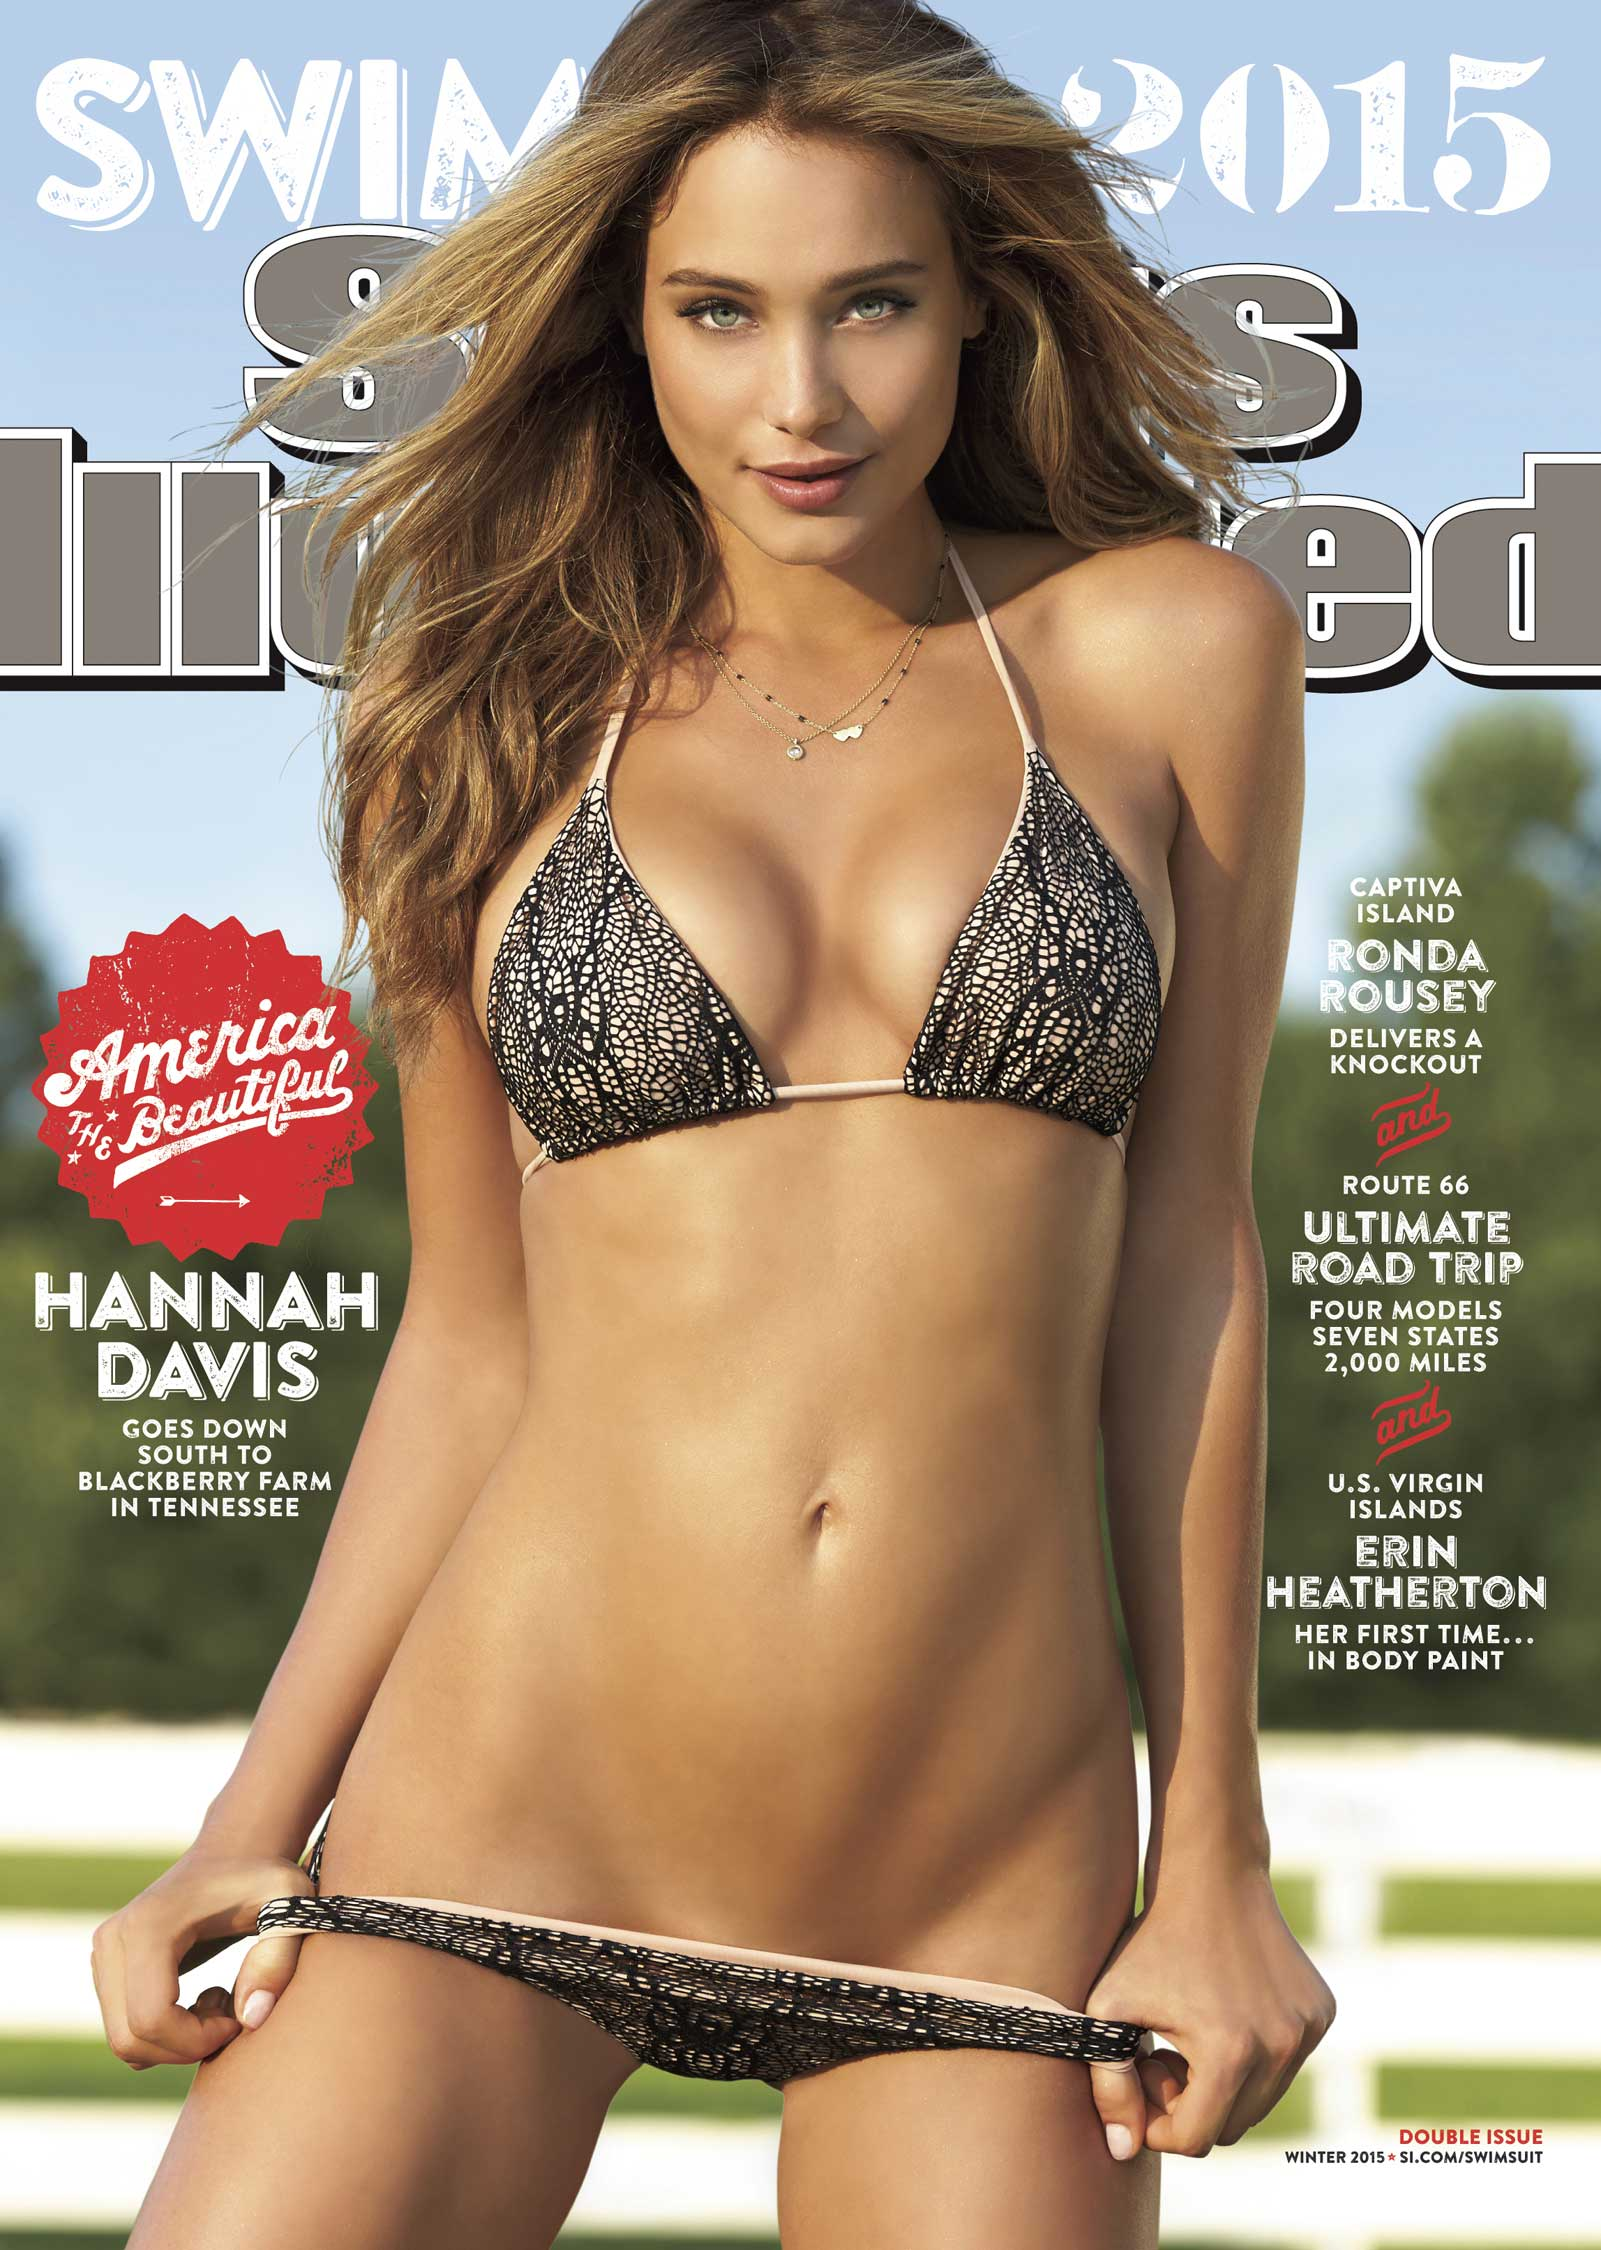 2015 Sports Illustrated Swimsuit Edition On Sale February 9th. Photo Credit: Ben Watts/Sports Illustrated